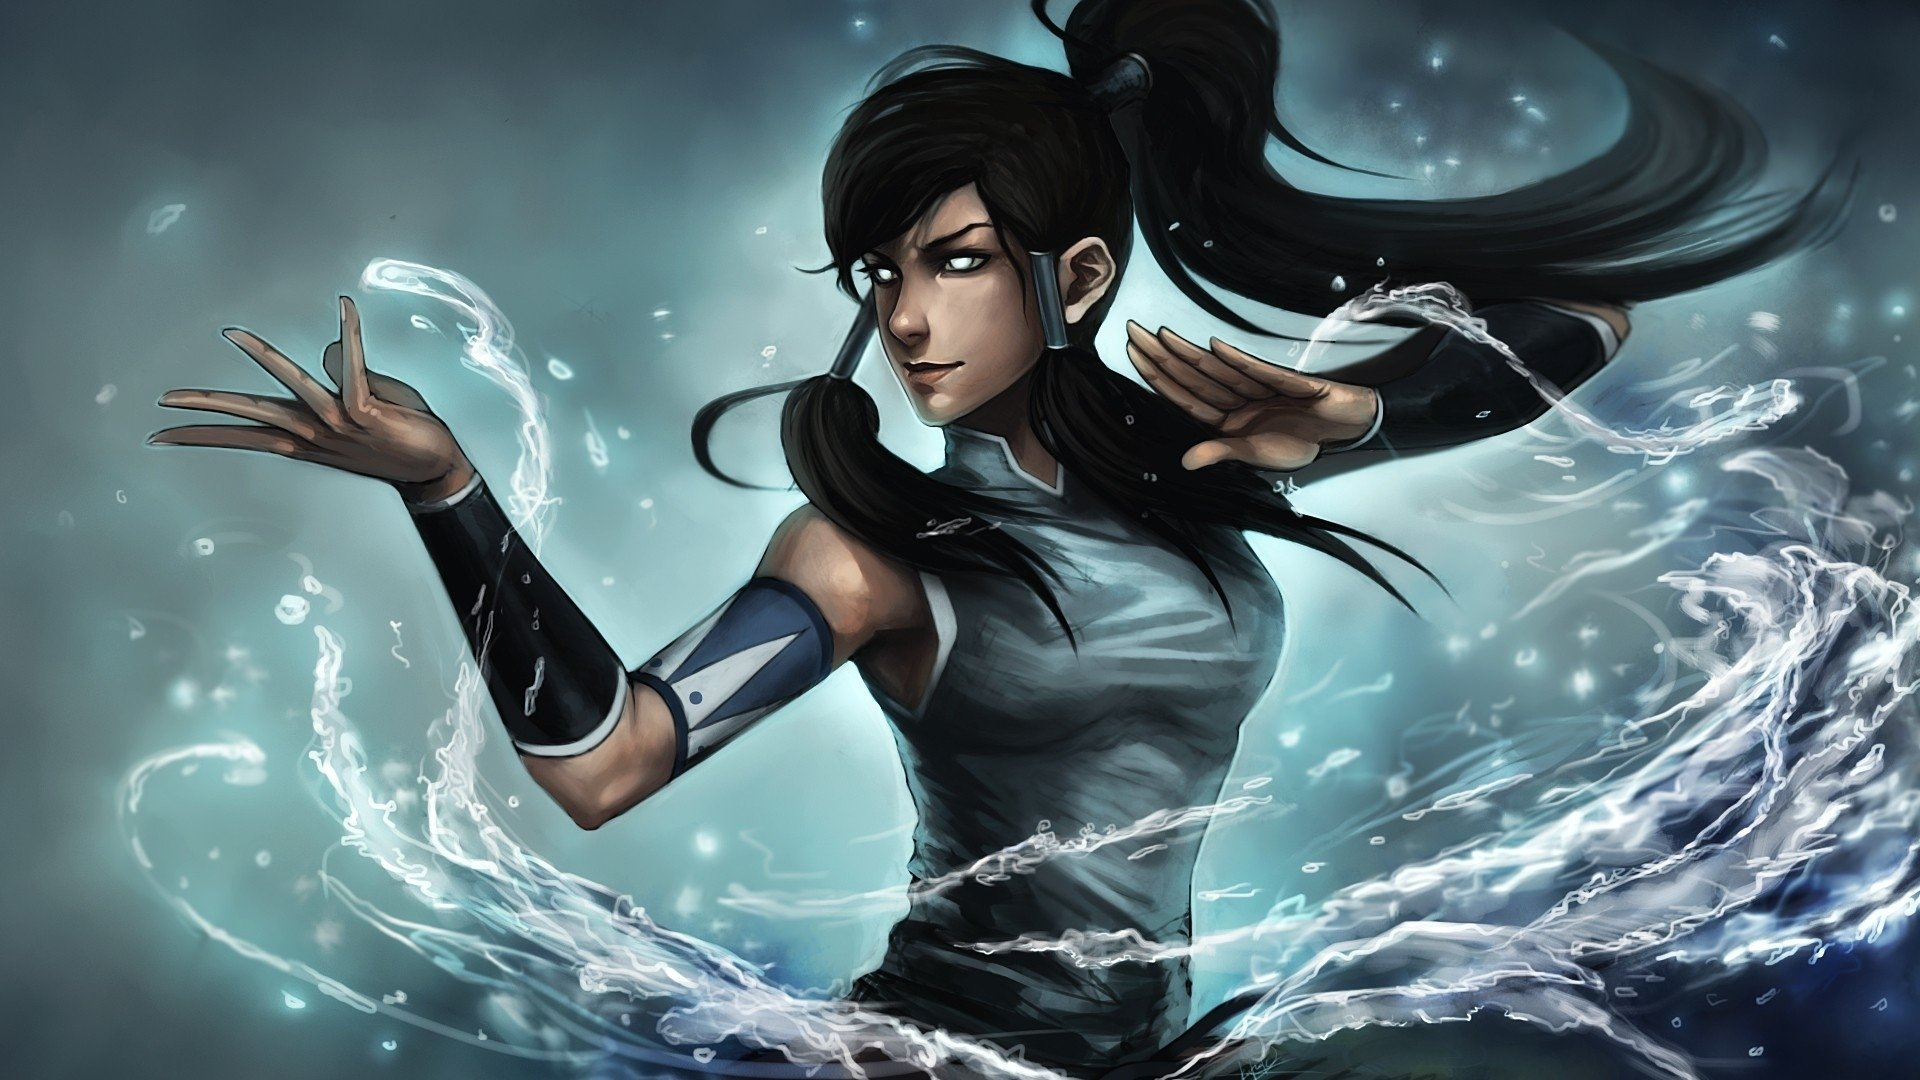 115 Avatar The Legend Of Korra HD Wallpapers Background Images 1920x1080